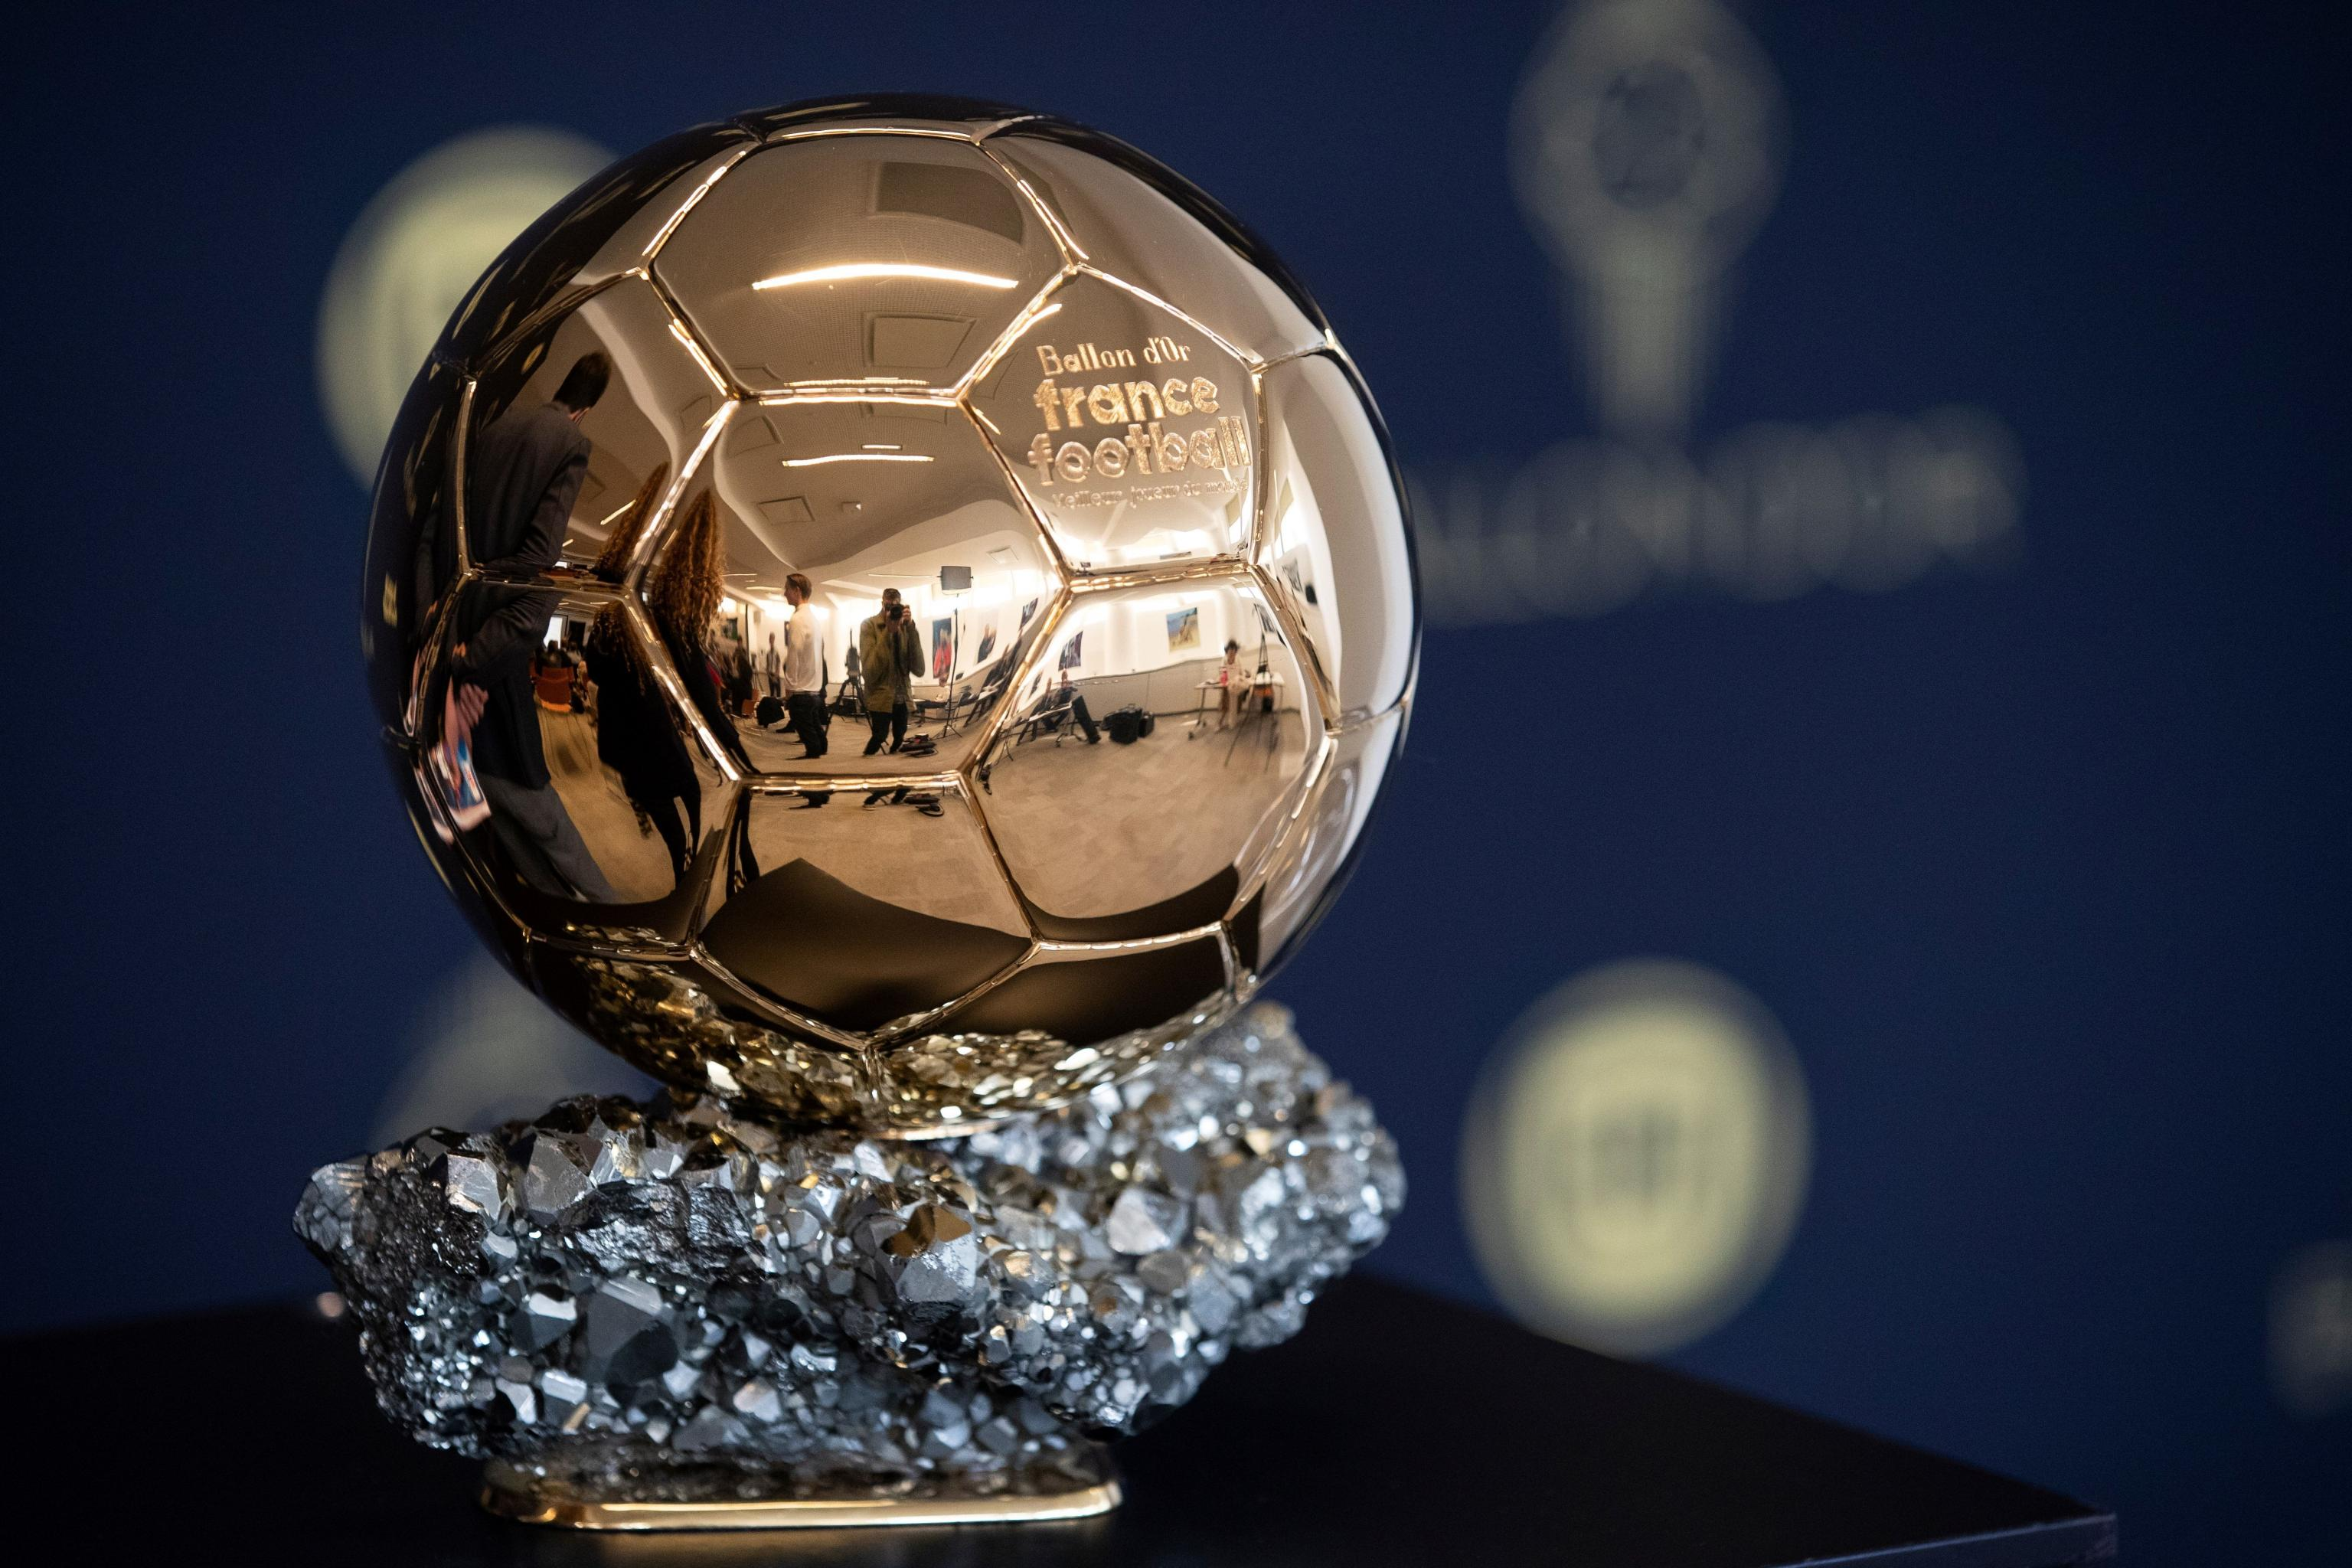 Ballon d'Or 2019: Award Ceremony Date, TV Schedule, Live Stream, Finalists  | Bleacher Report | Latest News, Videos and Highlights